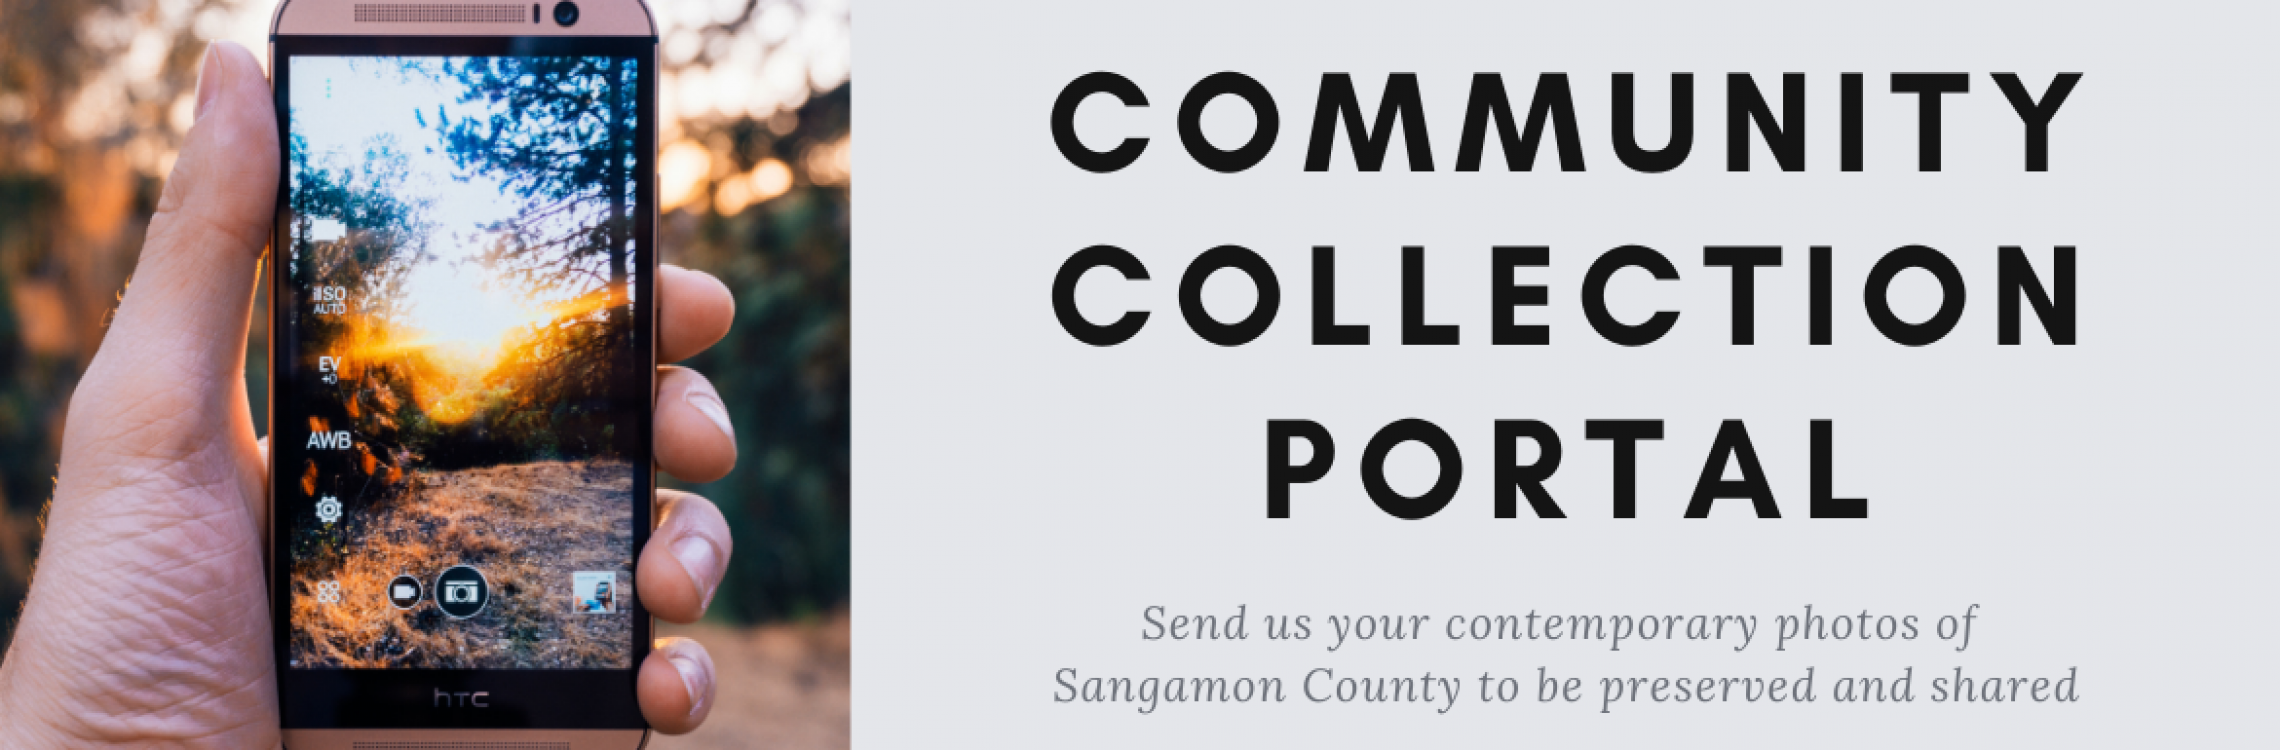 Community Collection Portal